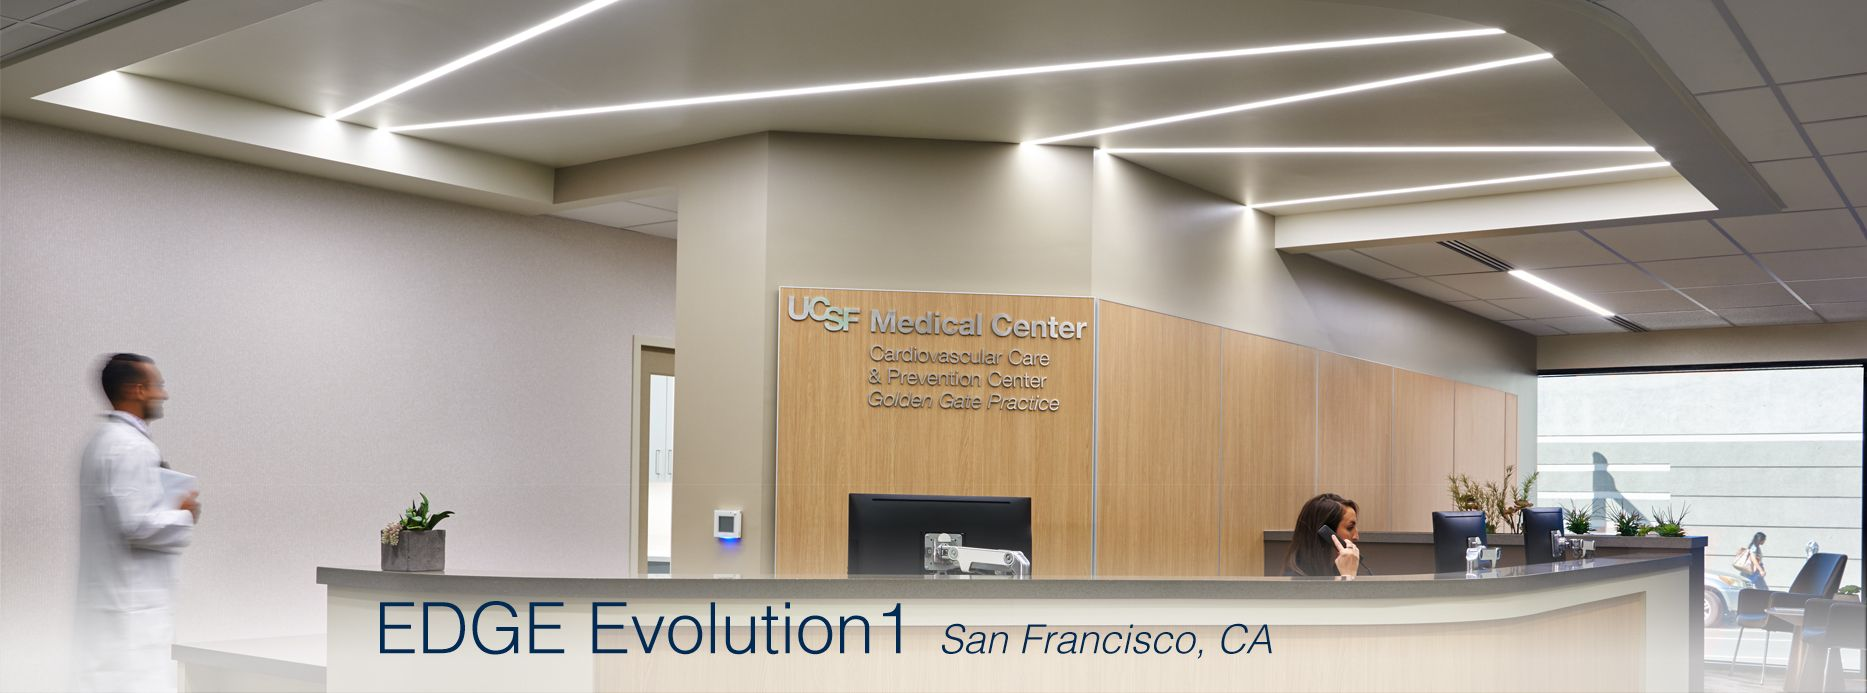 Amazing Pinnacle Architectural Lighting | Commercial Lighting | Recessed Lighting |  Linear Lighting Good Ideas